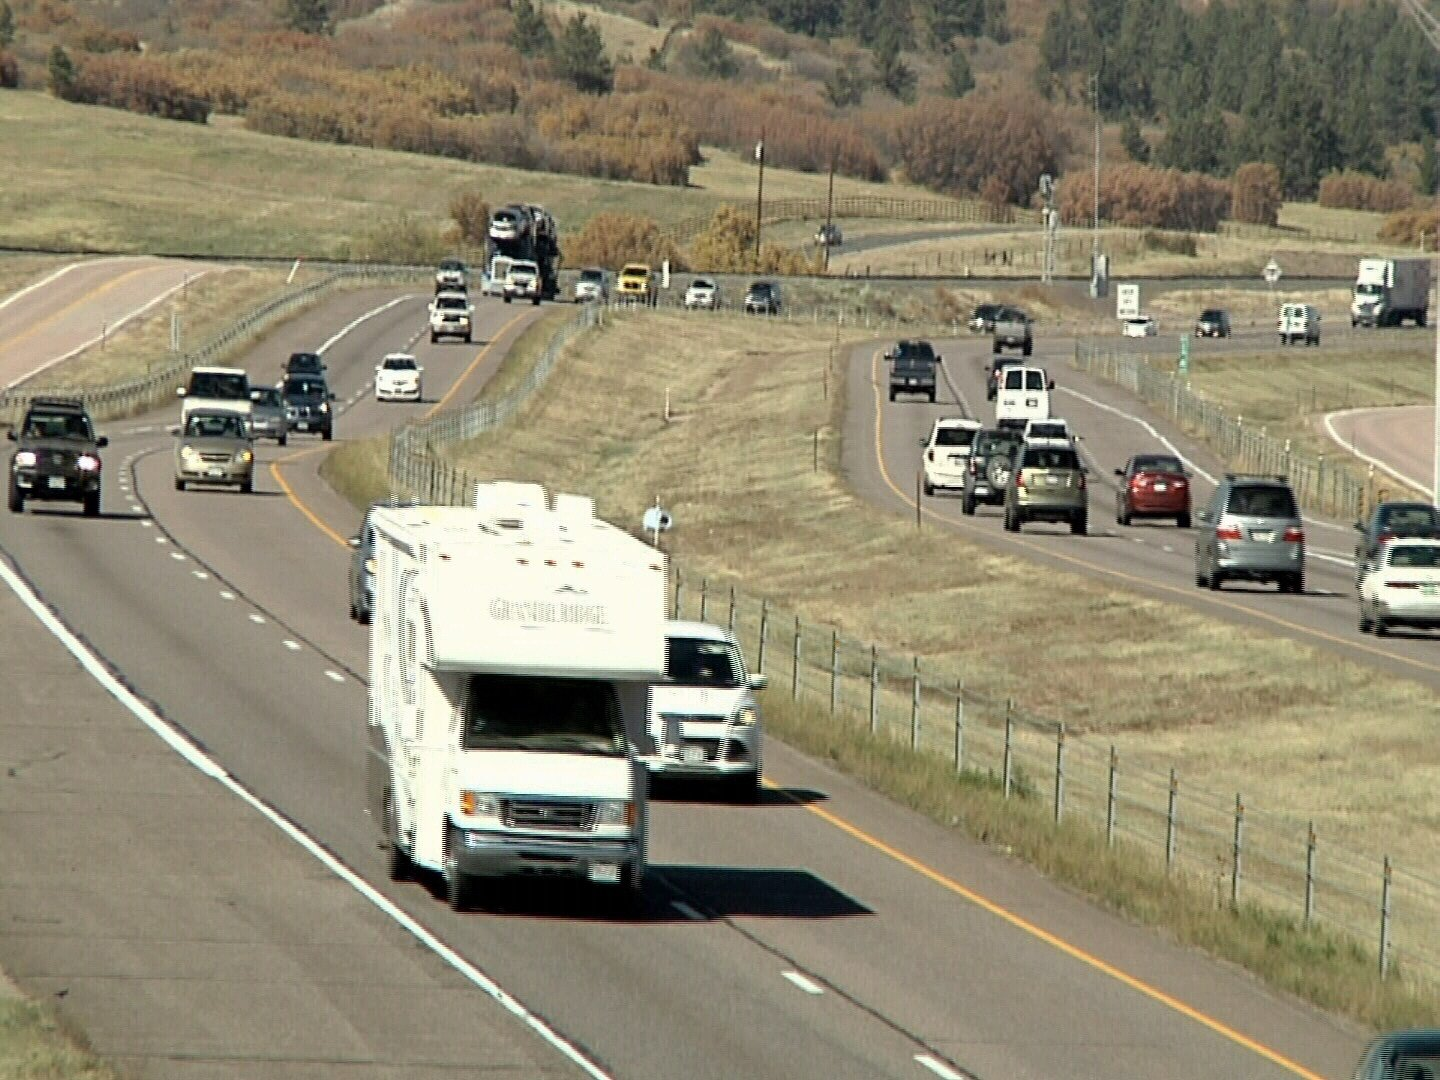 "Interstate 25 narrows to 4 lanes between Monument and Castle Rock for a 17 mile ""gap"" that is often congested and a frequent site for serious crashes."